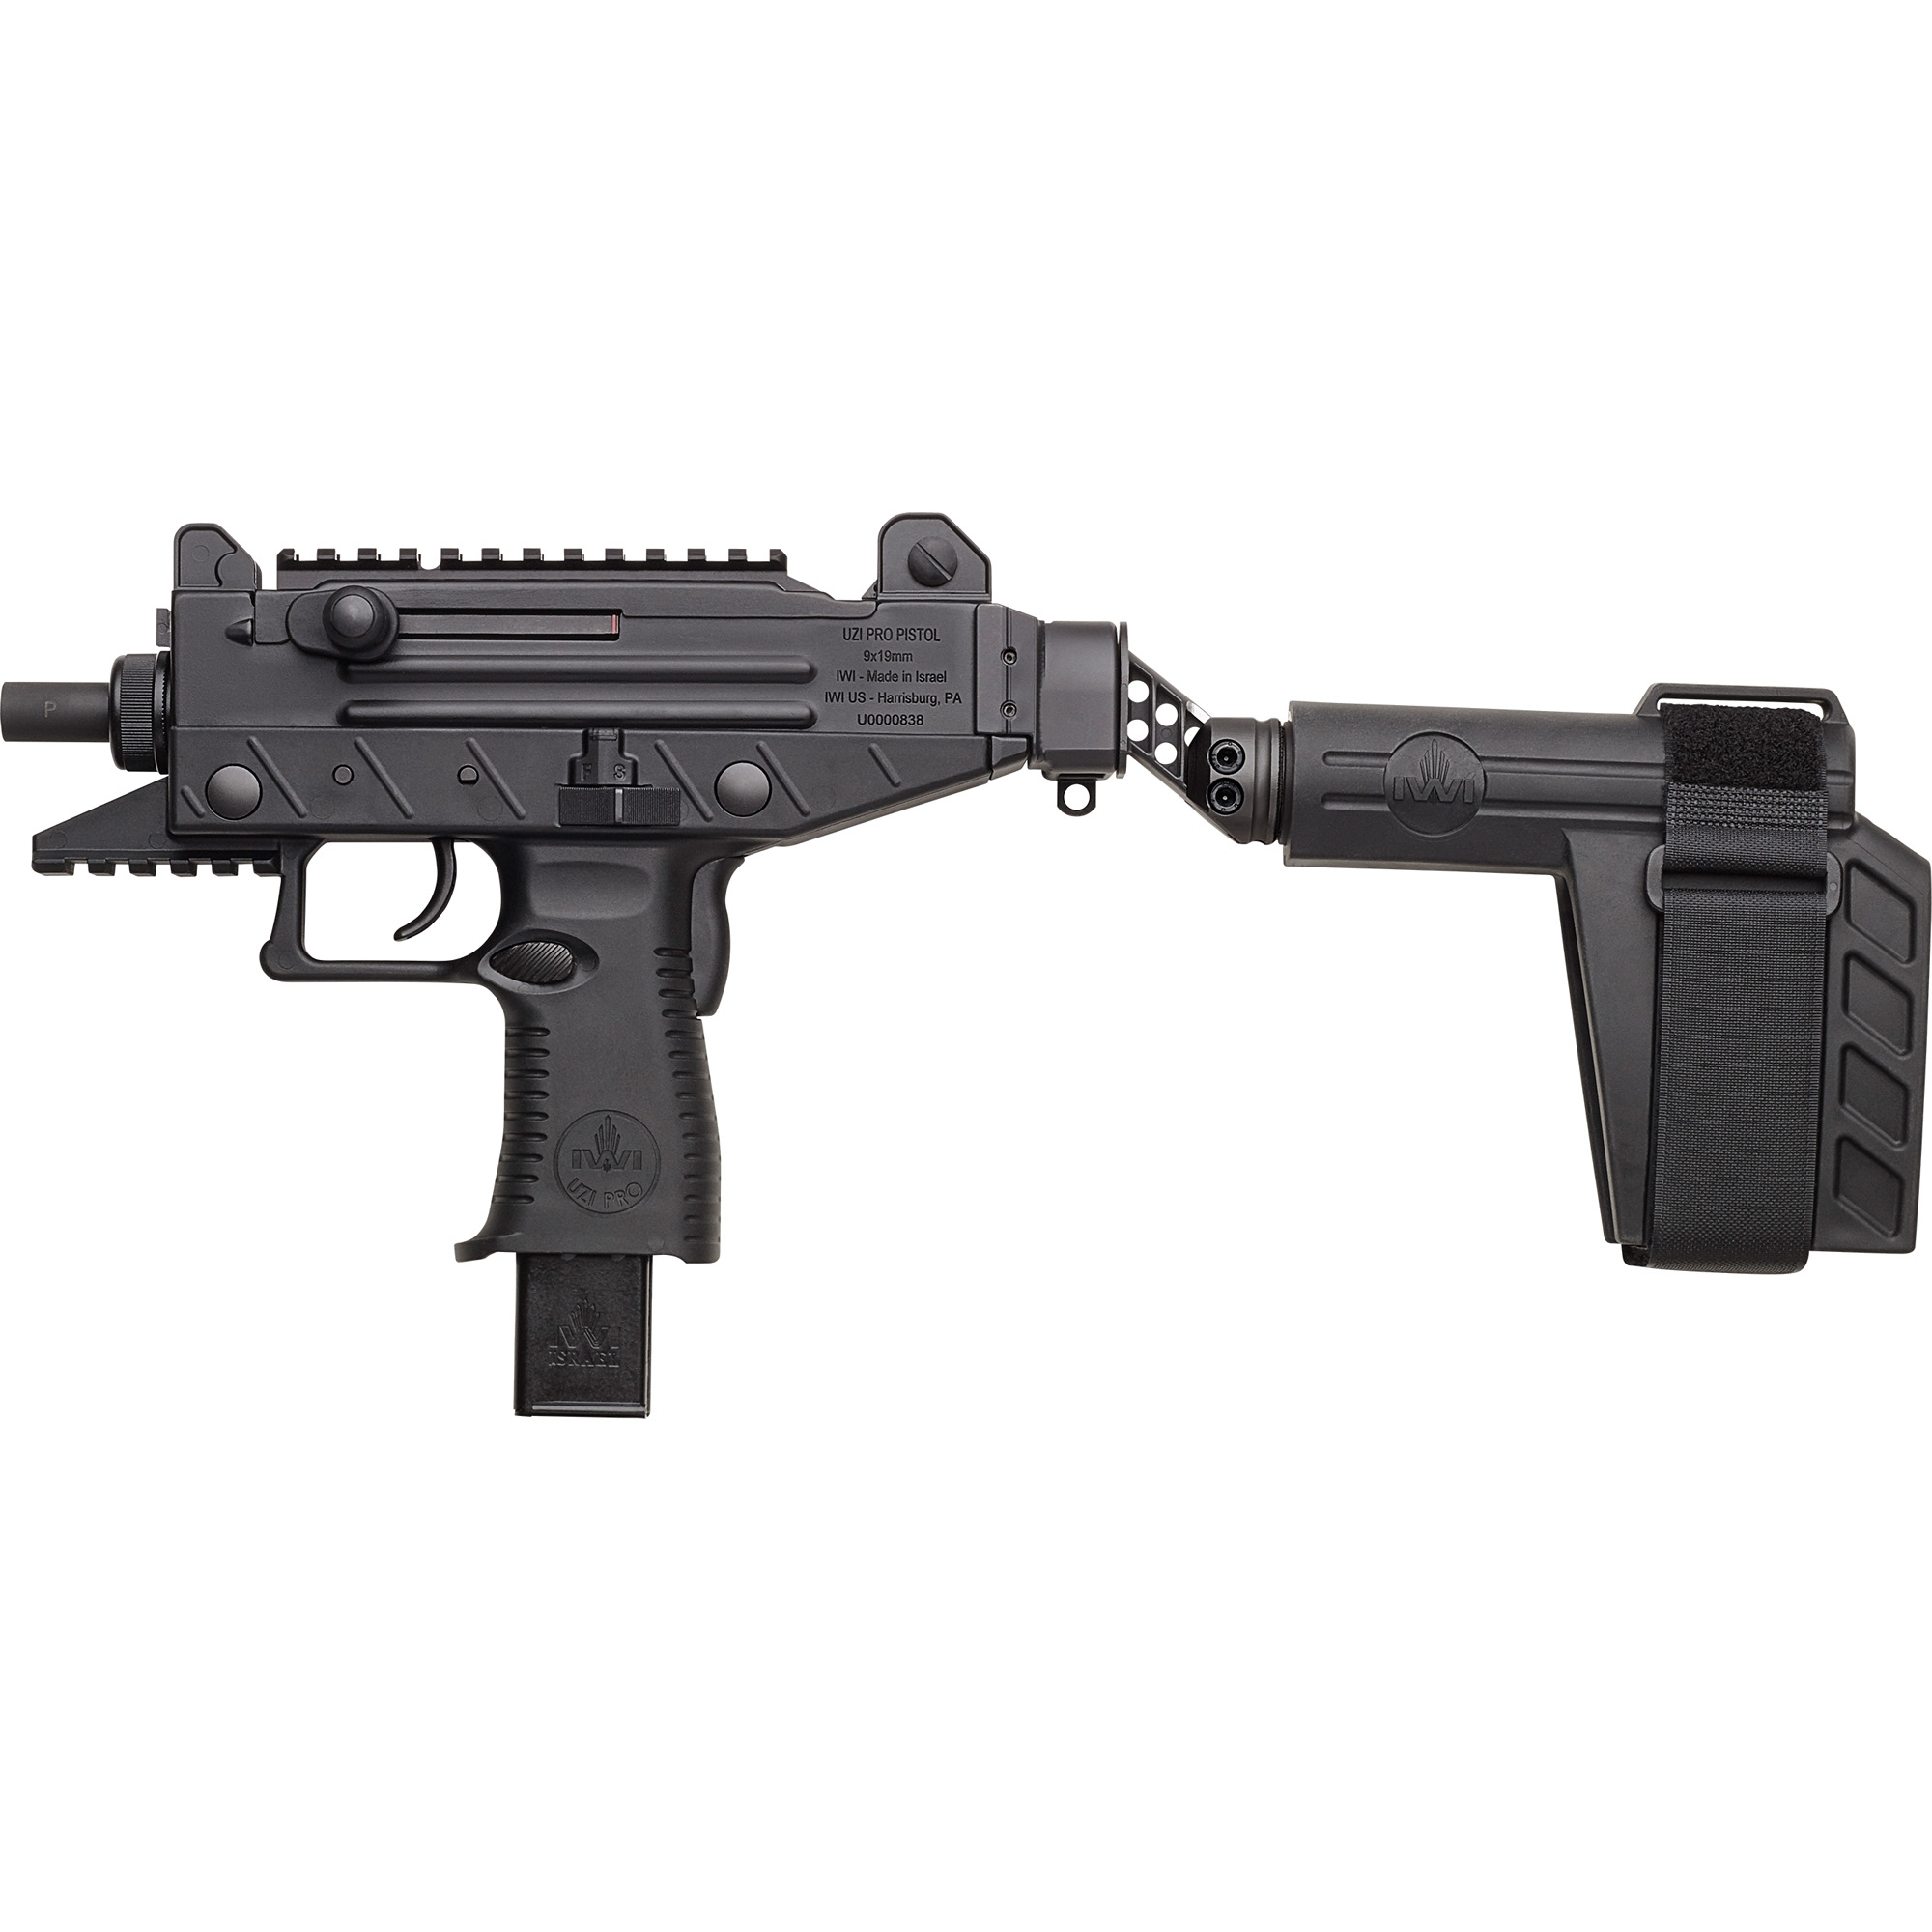 """The UZI PRO SB features a side-folding Stabilizing Brace"""" produced for IWI US by SB Tactical LLC"""" designers and manufacturers of the original SB15 and SB47 Pistol Stabilizing Braces. Originally designed as a means for persons with limited mobility to operate and fire the AR-15 pistol"""" the custom adaptation of the Stabilizing Brace to the UZI PRO SB takes the application of large frame pistol control and stabilization to a new level. With the IWI brace's unique side folding feature"""" the UZI PRO SB can be fired with or without the brace extended depending on the shooters need. With the brace in the folded position"""" storage space required in your safe or range bag is minimized. In all other respects"""" the UZI PRO UPP9SB is identical to the UPP9S."""